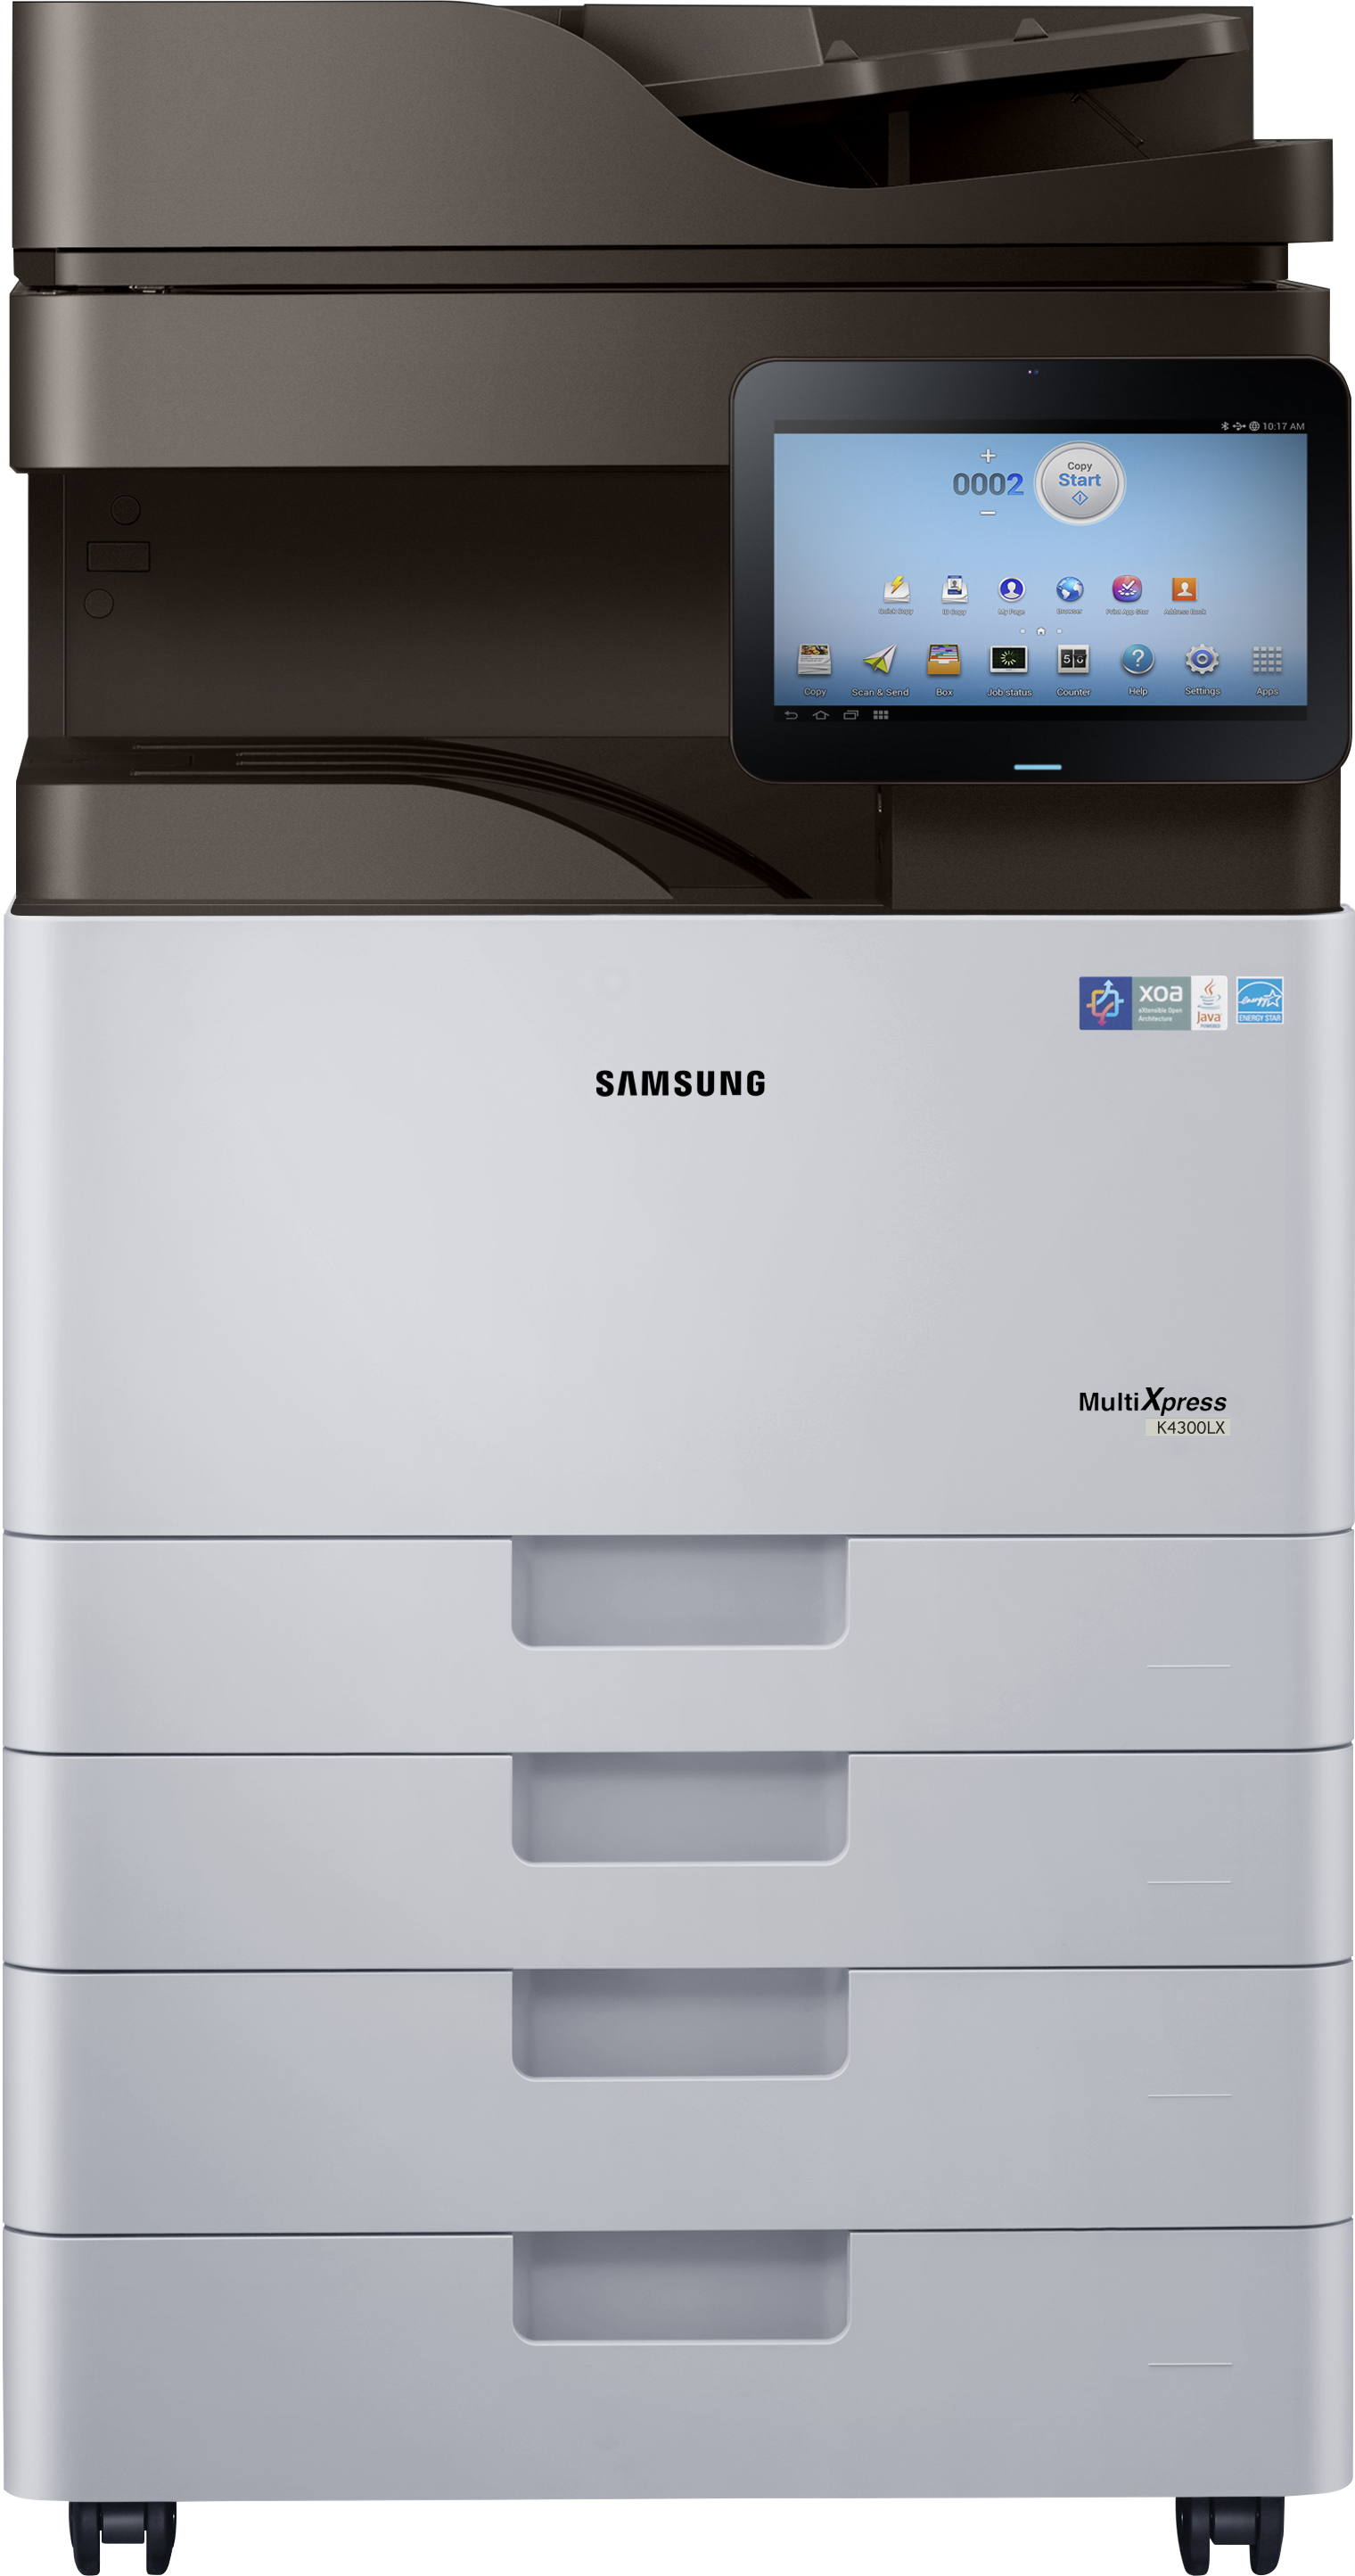 Samsung MultiXpress SL-K4300LX Toner Cartridges